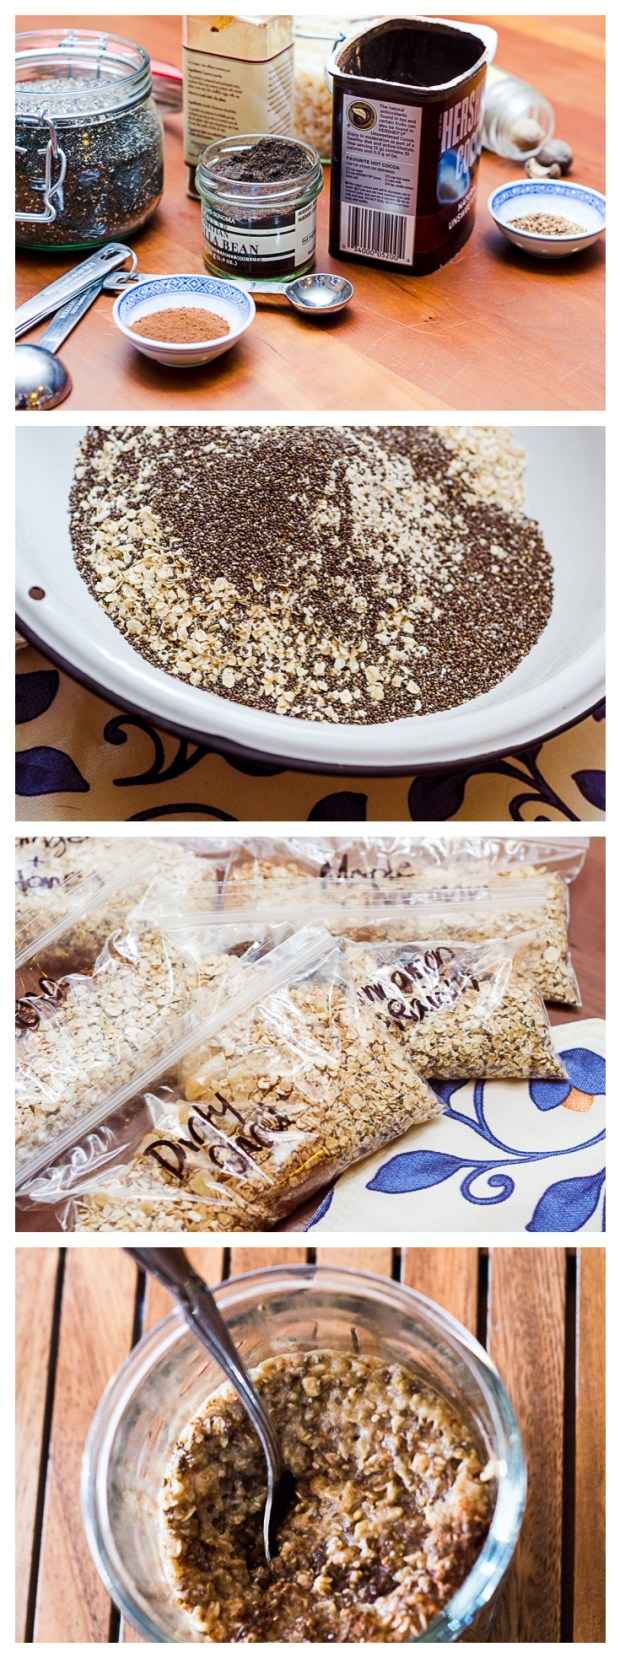 how to make home made gluten-free instant oatmeal from frannycakes